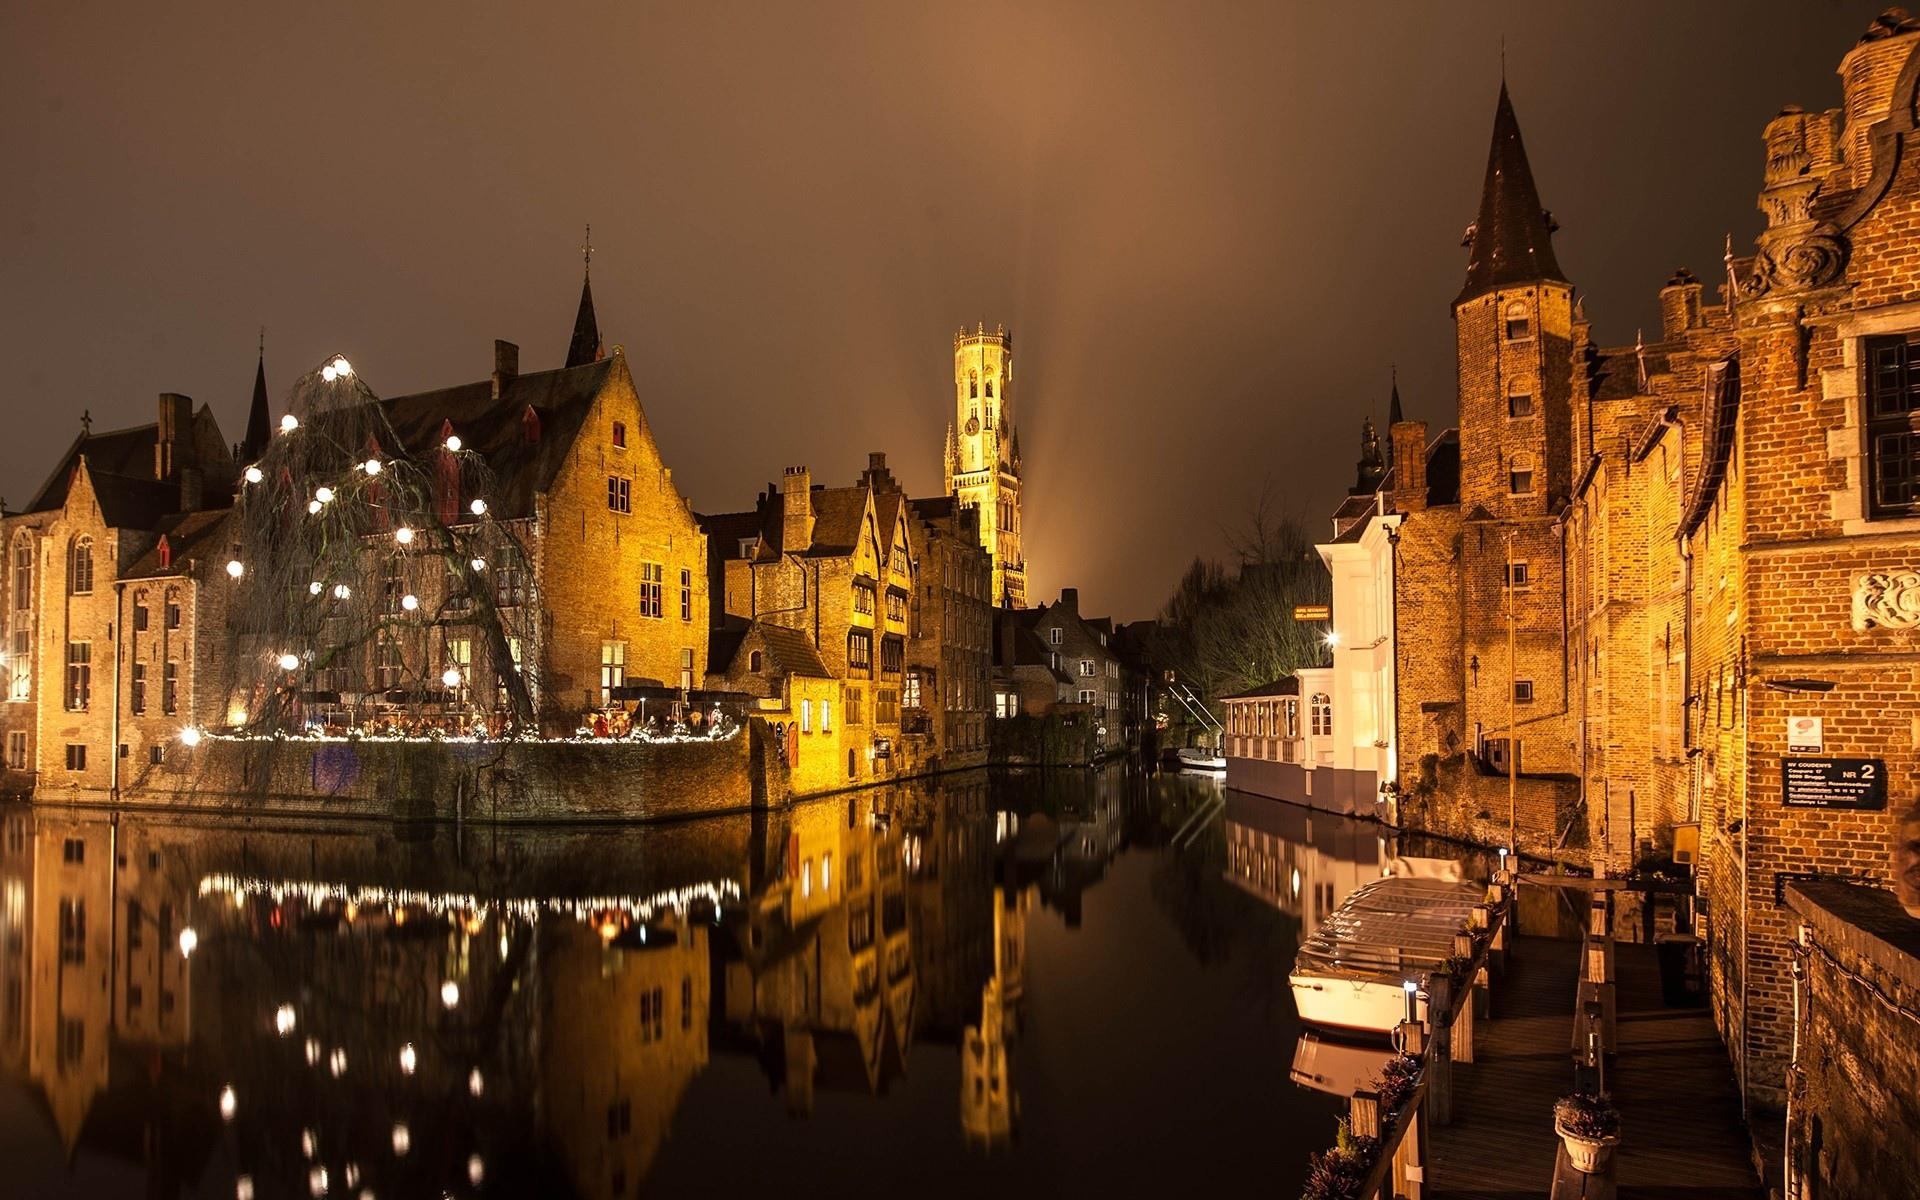 HD Brugge Night Lights Buildings Water Canal Reflection HD 1080p 1920x1200